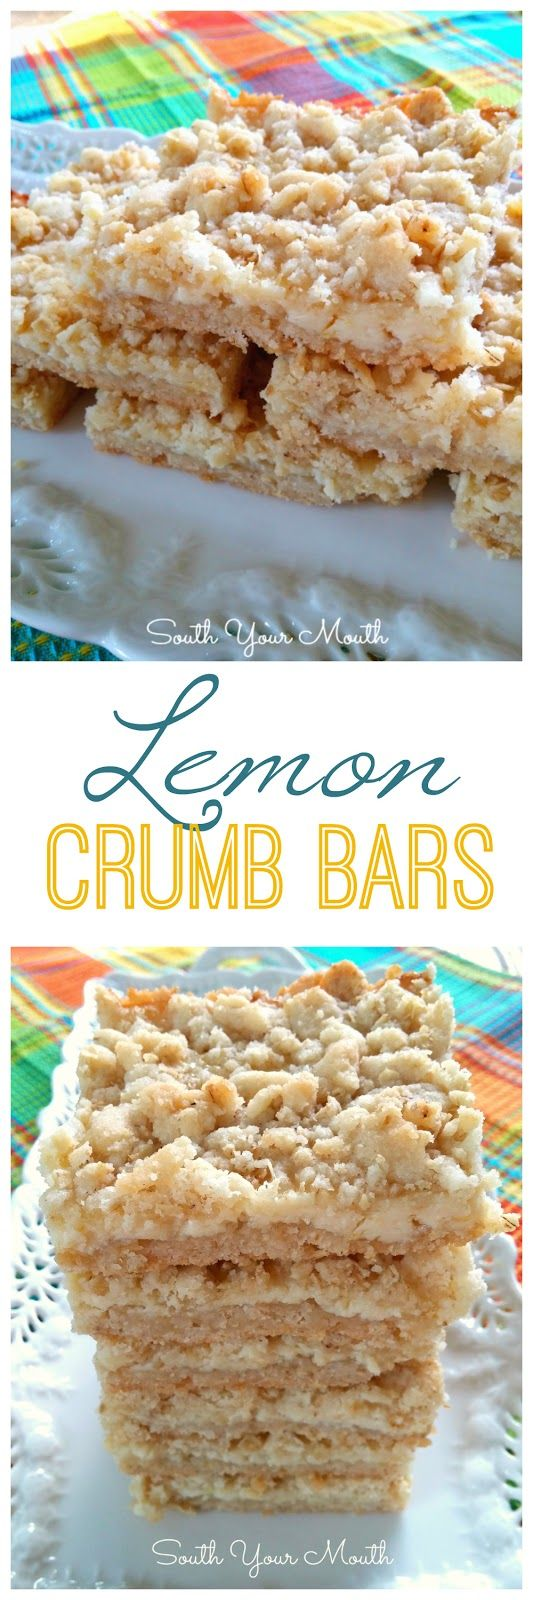 Lemon Crumb Bars - Just the right amount of sweetness with the tart lemons and a beautiful contrast in texture with the crumbly topping and creamy filling. So good!